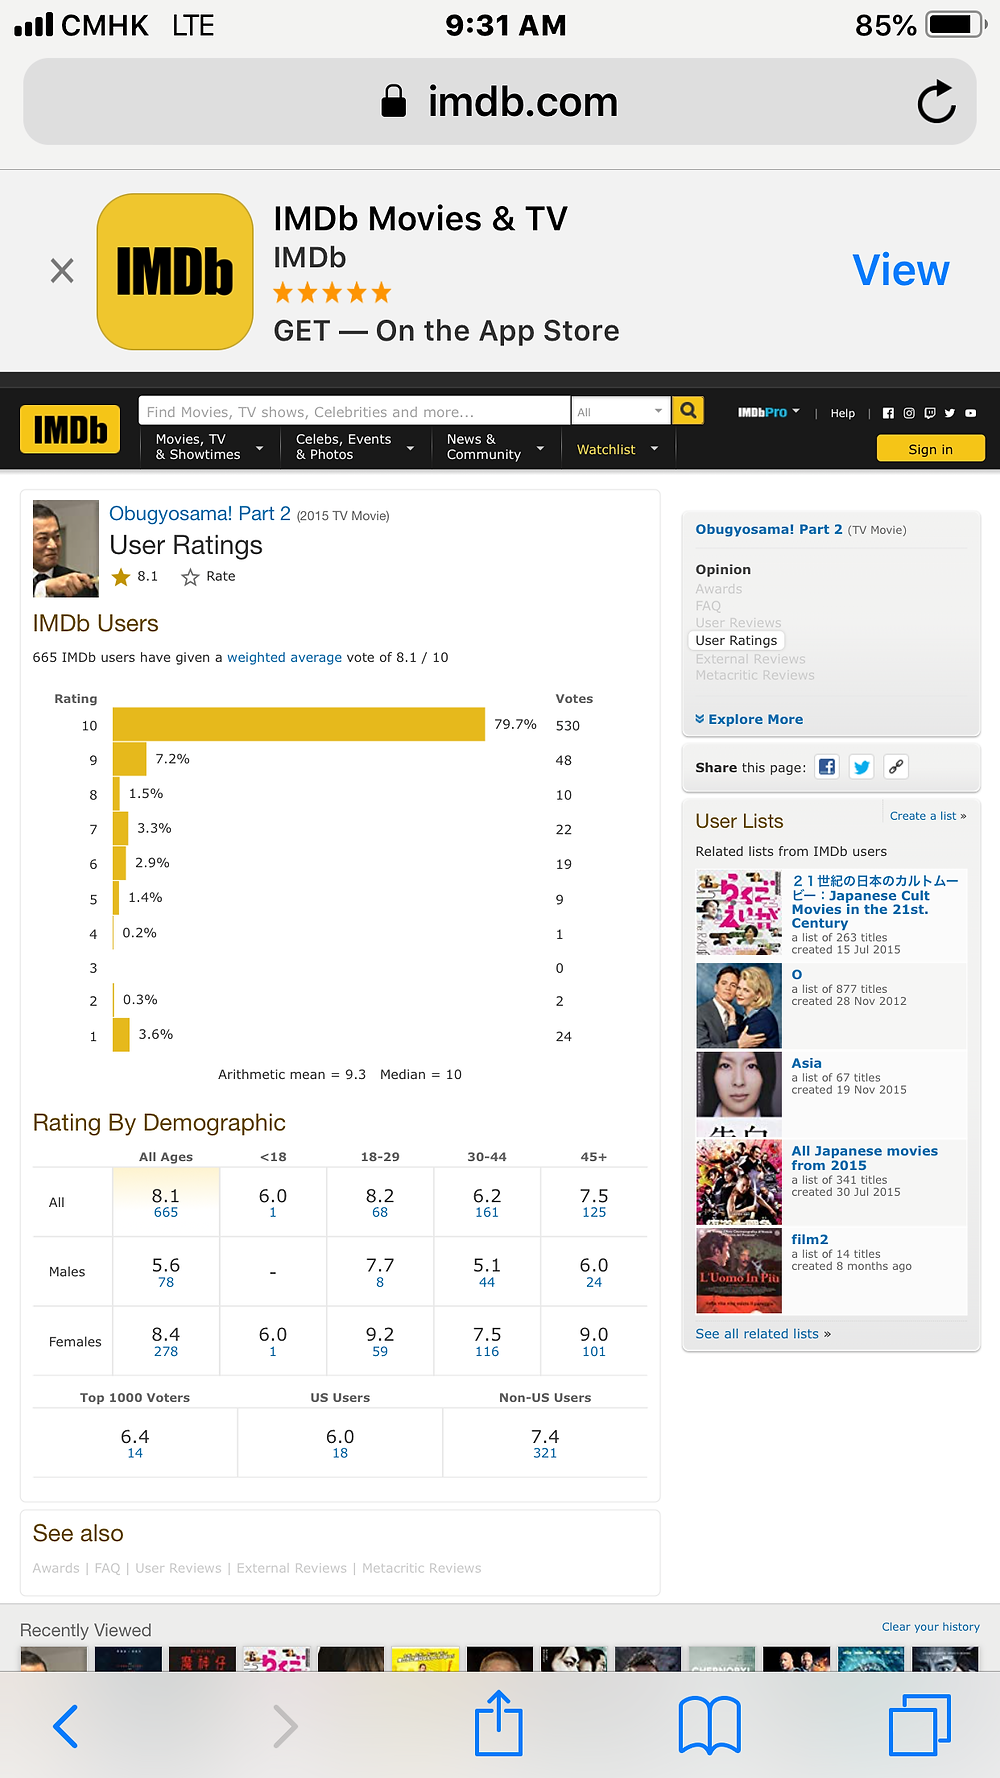 At 9:31 am (China), Aug.9 2019 665 IMDb users voted 8.1 / 10; Top 1000 users voted 6.4; US users voted 6.0; Non US users voted 7.4.